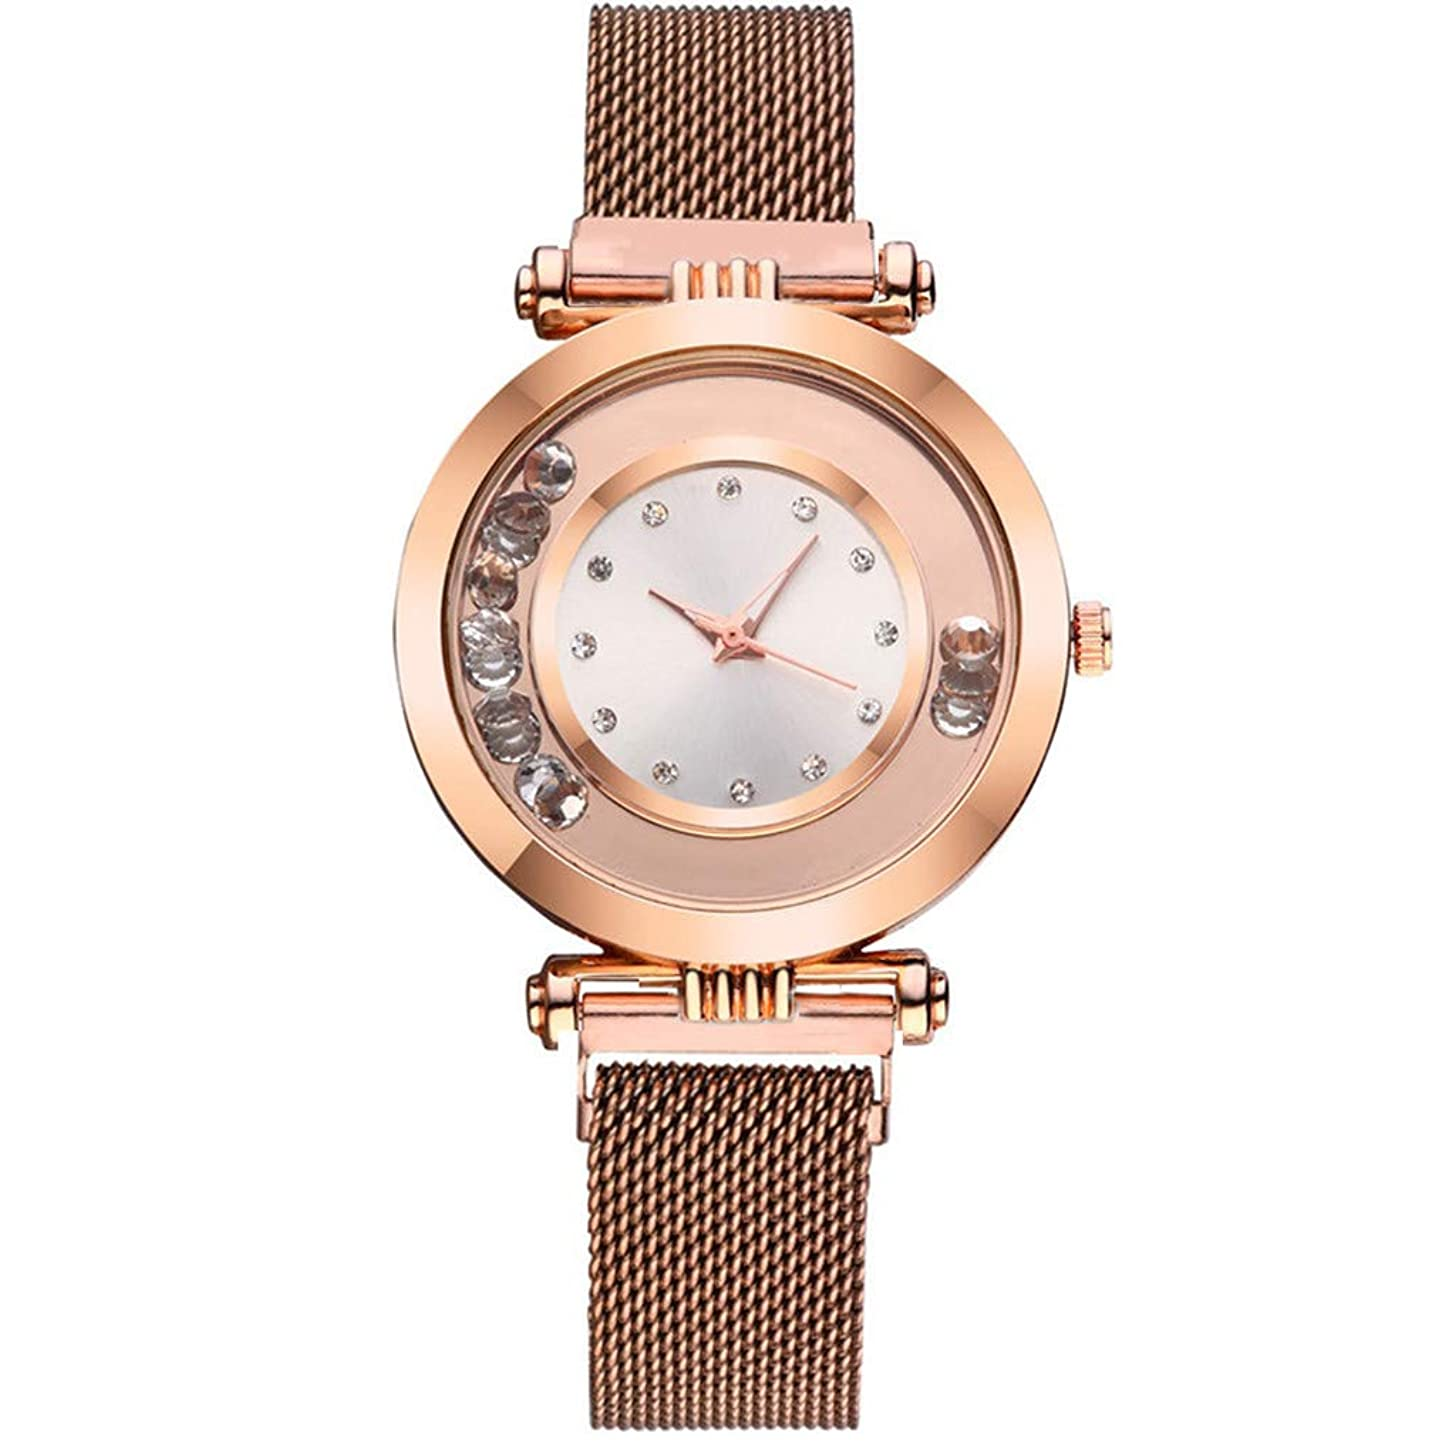 Clearance! Hot Sale ? Fashion Quartz Watch Women Stainless Steel Watchband Wristwatch Gift for Female Under 10 Dollars 2019 New